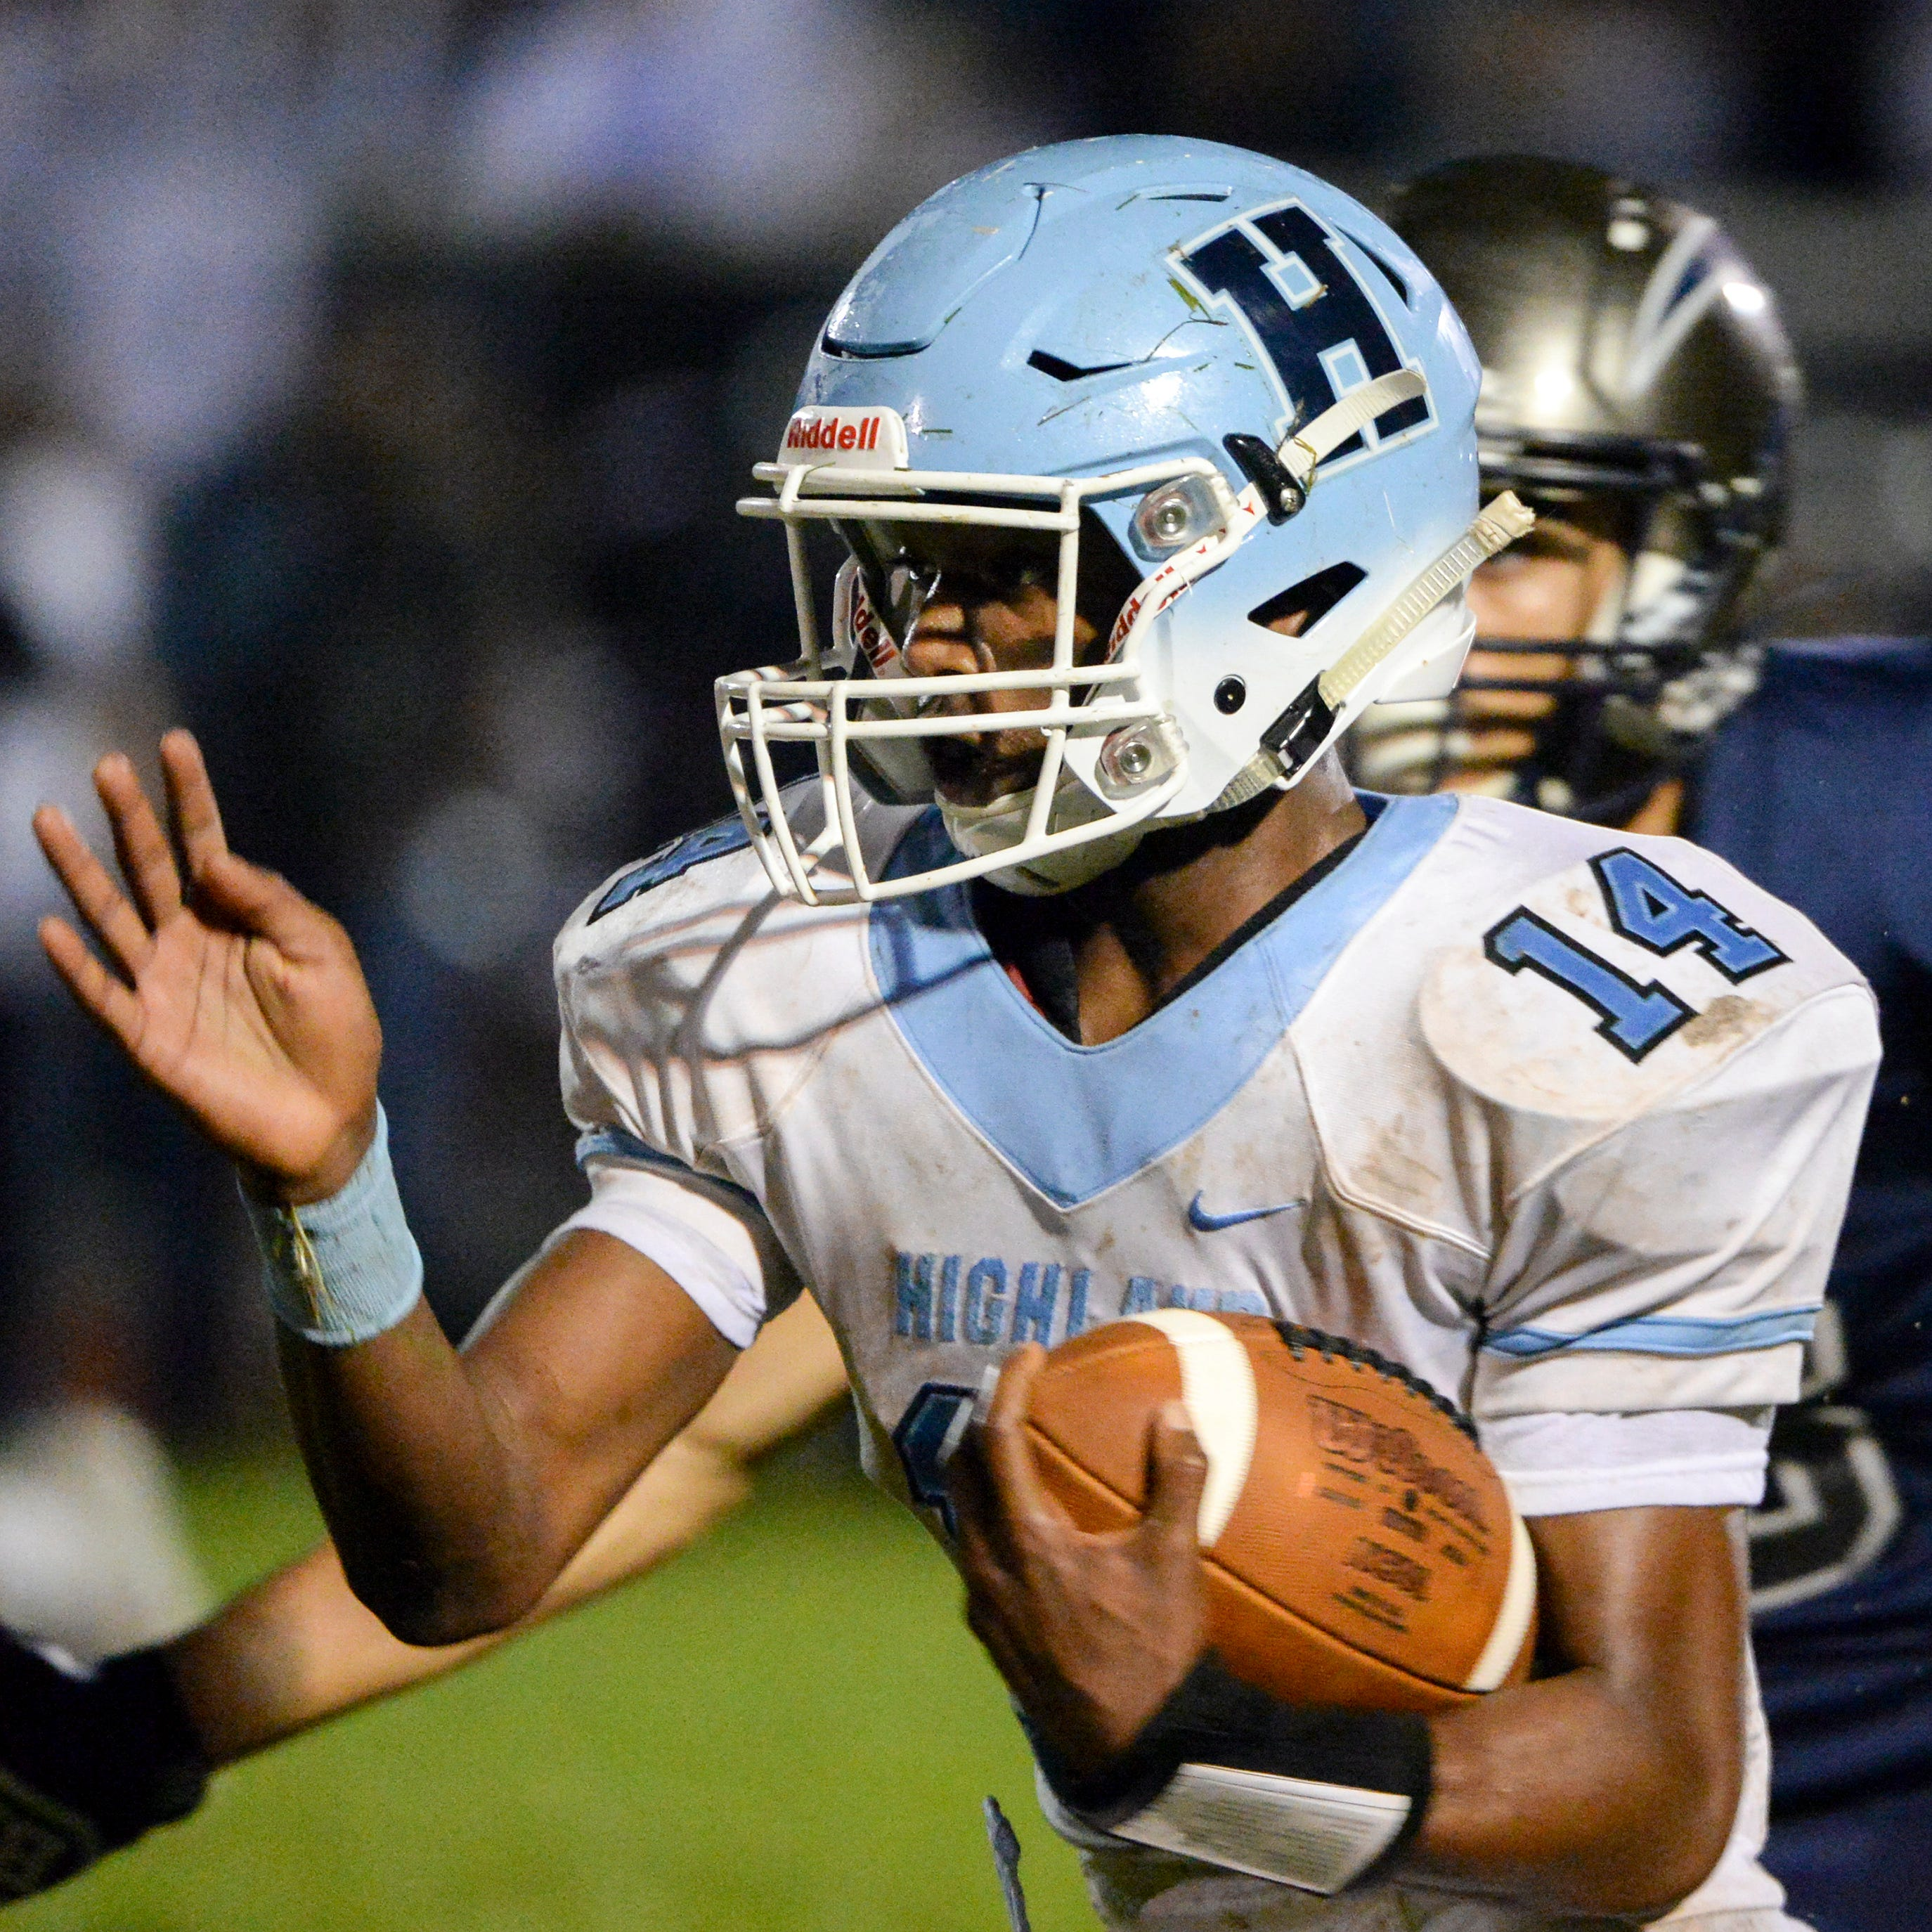 South Jersey Football: The 10 games you'll want to see in Week 7